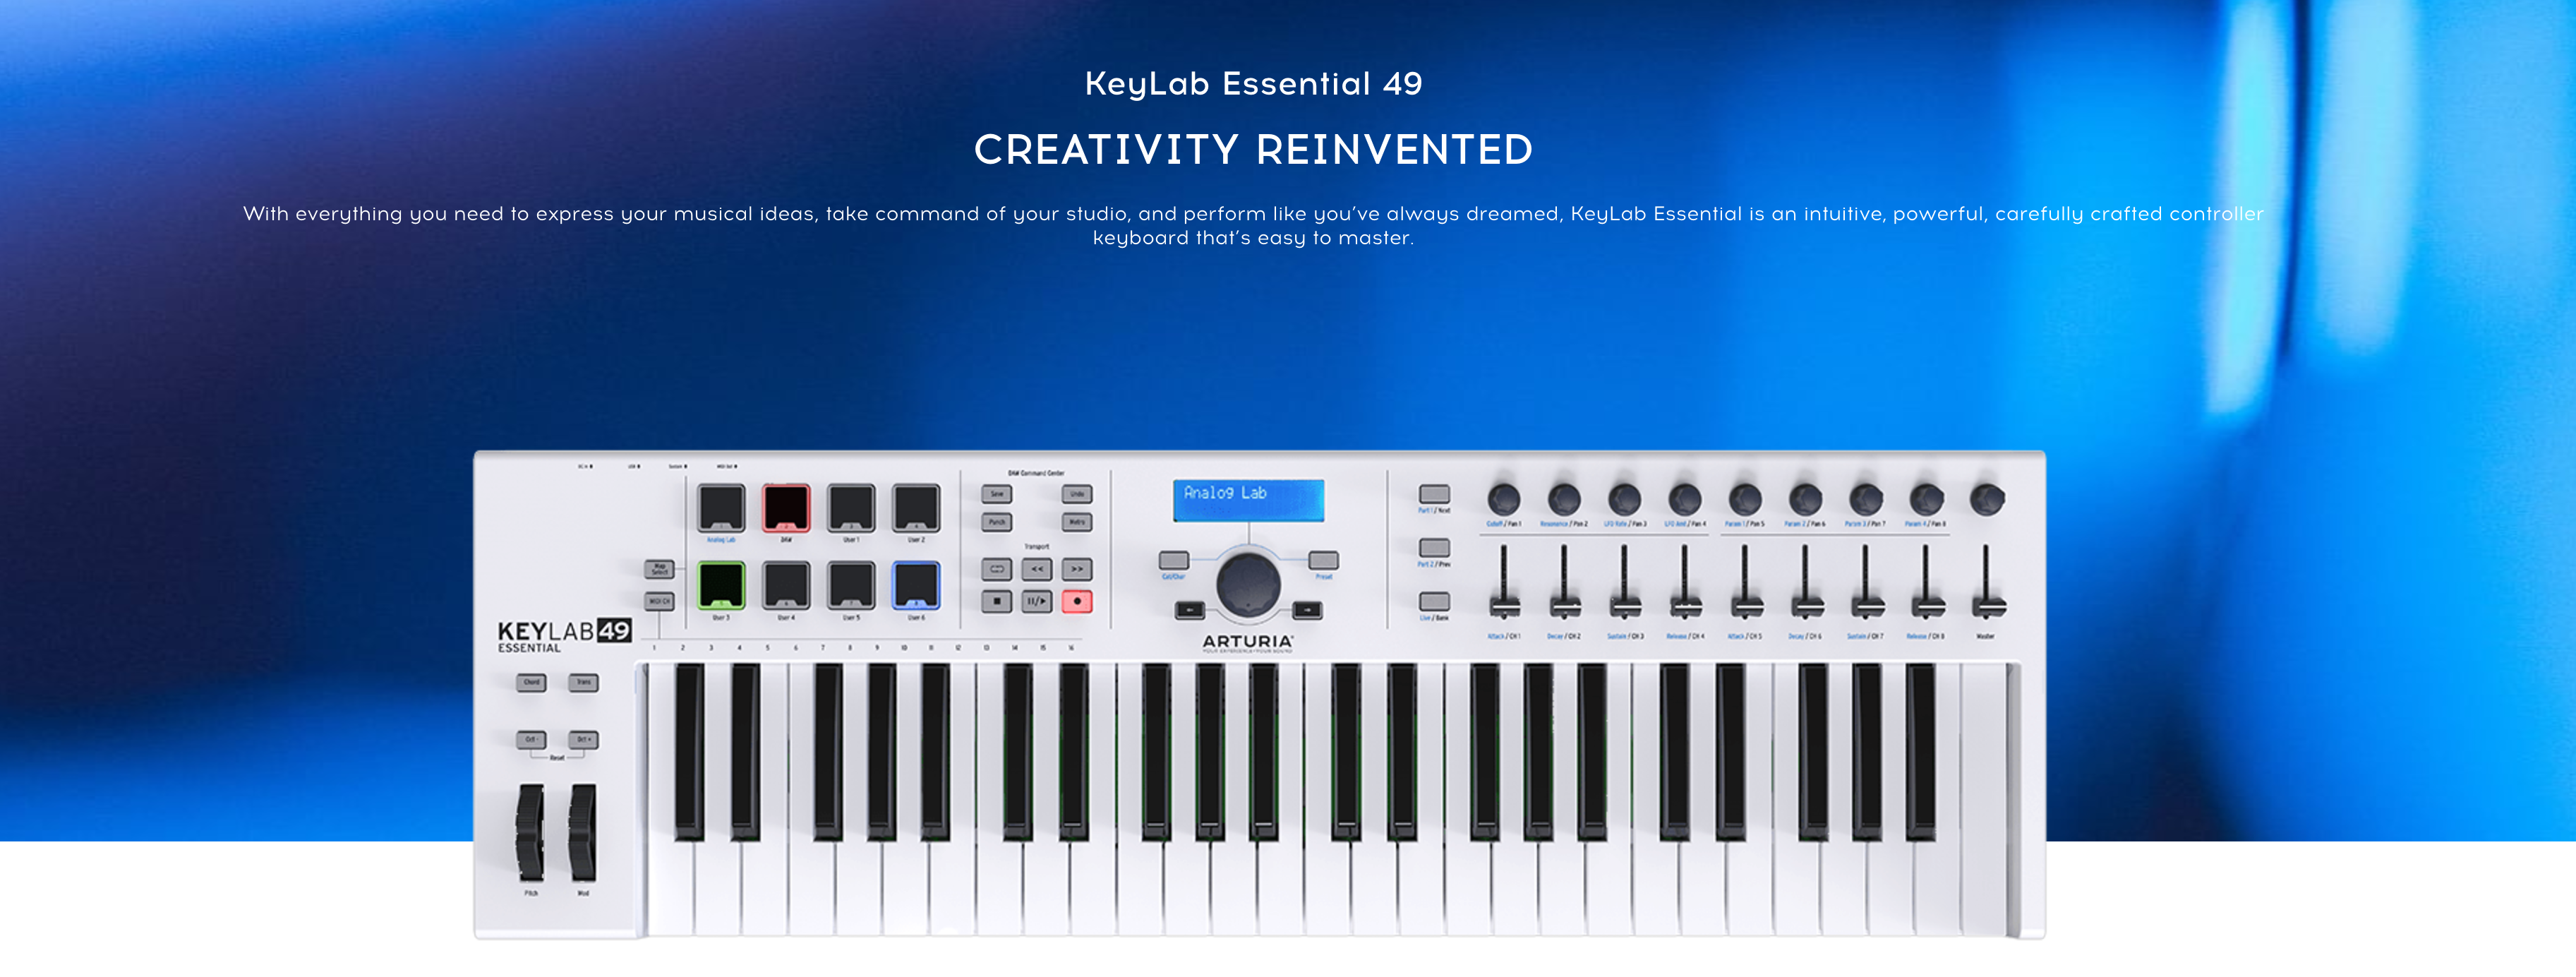 What is the best midi keyboard for FL Studio?